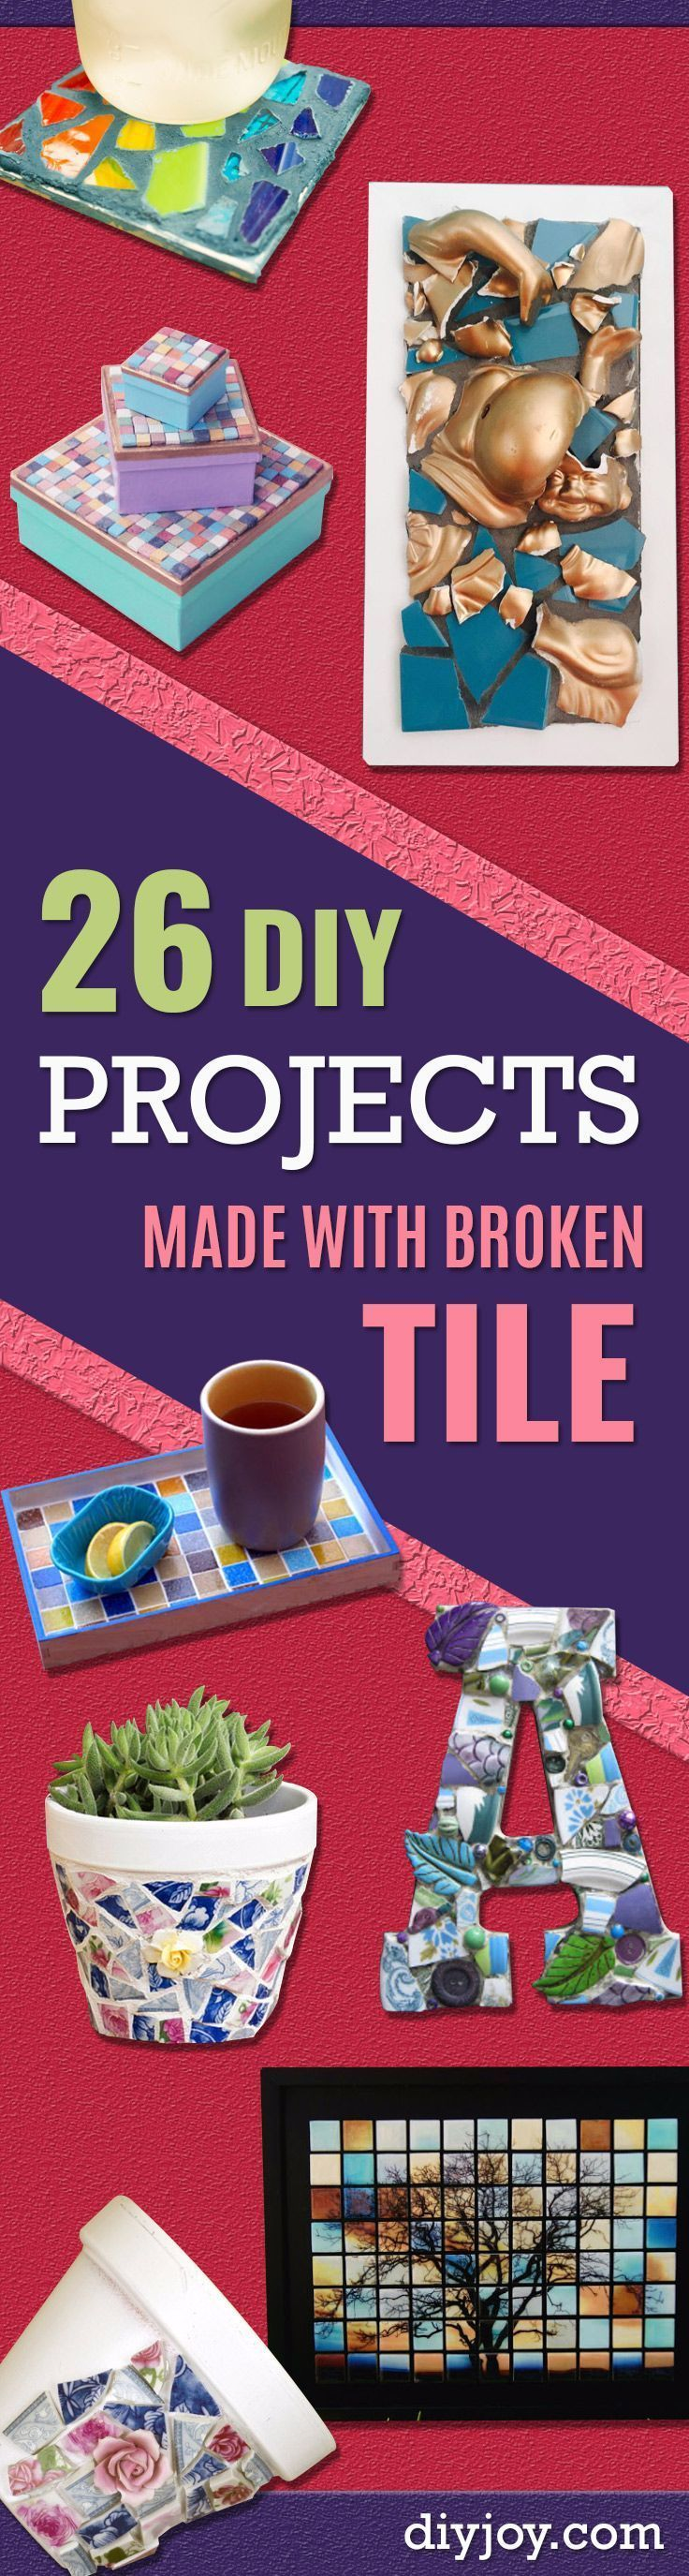 DIY Projects Made With Broken Tile - Best Creative Crafts, Easy DYI Projects You Can Make With Tiles - Mosaic Patterns and Crafty DIY Home Decor Ideas That Make Awesome DIY Gifts and Christmas Presents for Friends and Family http://diyjoy.com/diy-projects-broken-tile